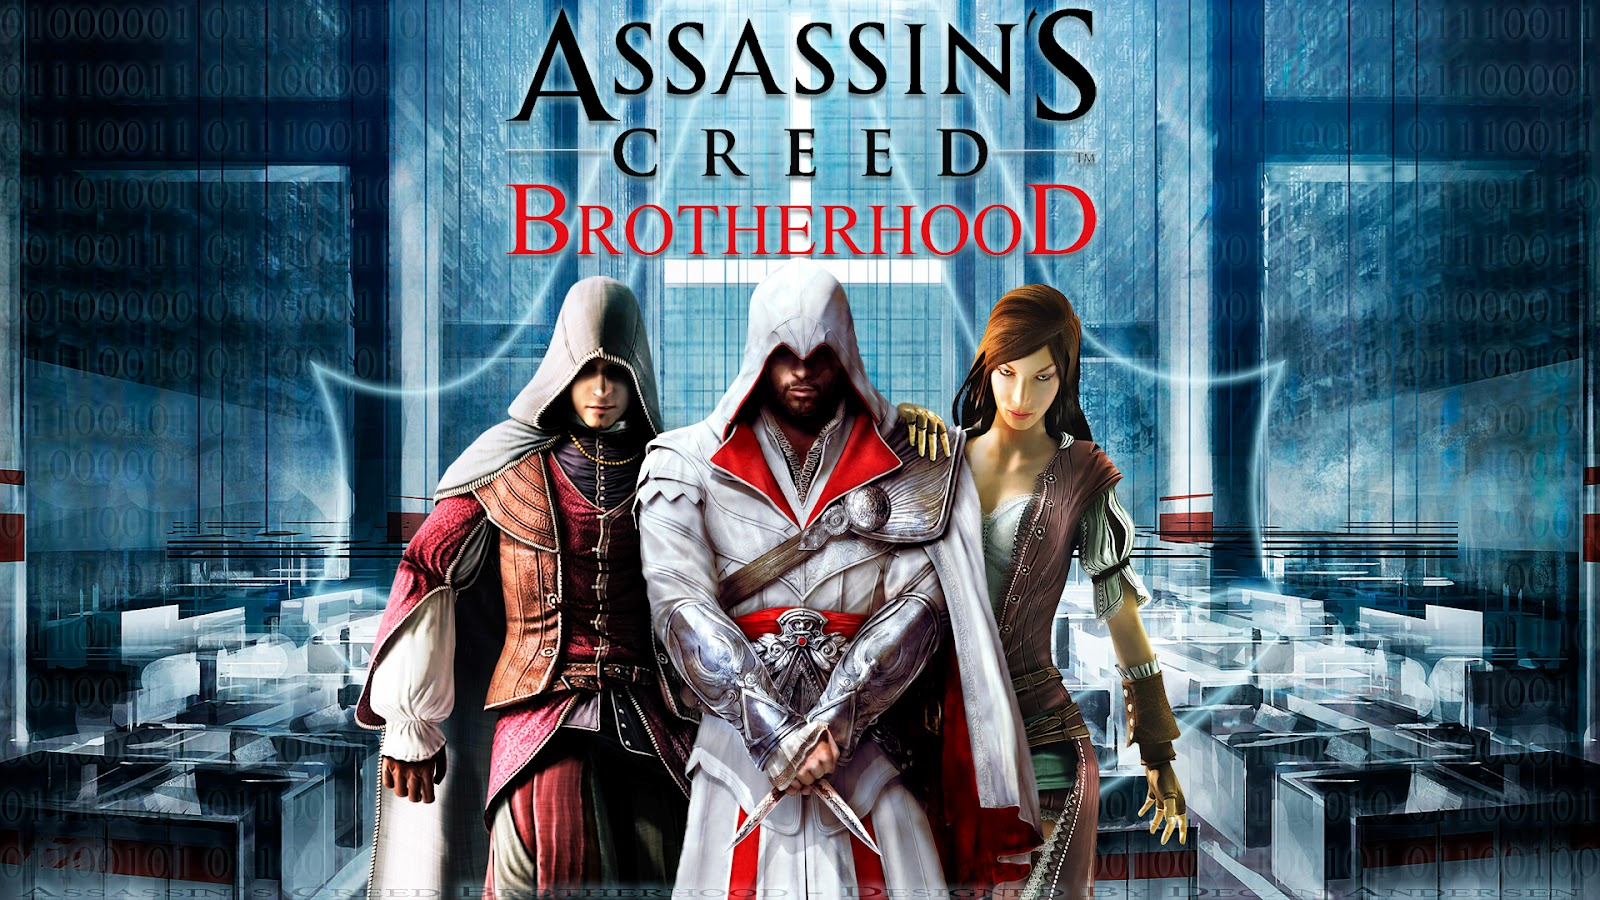 http://4.bp.blogspot.com/-4Upg49nG6jM/UA1kS1_ZkOI/AAAAAAAAArs/tJMEvhPdvPM/s1600/assassin__s_creed_brotherhood_by_decanandersen-d31c8v3.jpg